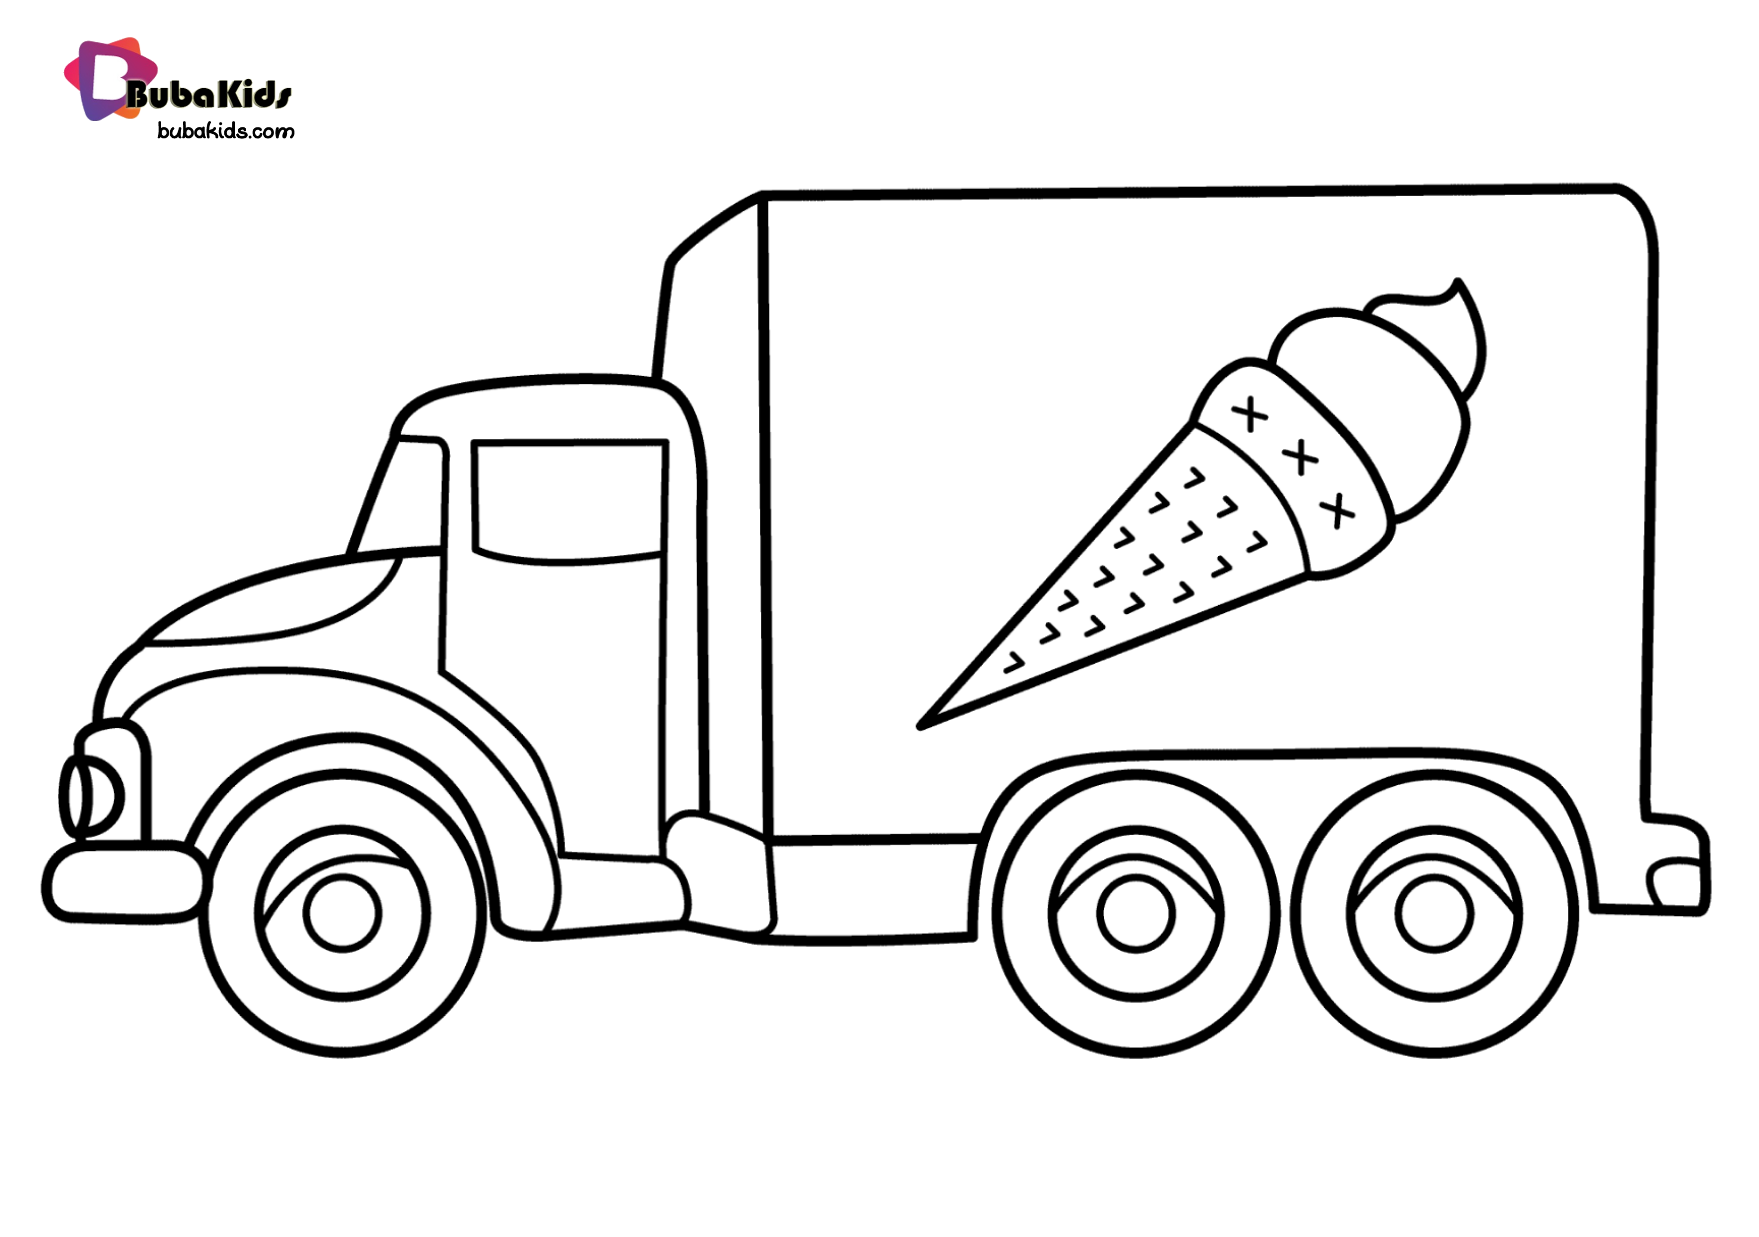 Free Download To Print Ice Cream Truck Coloring Page Collection Of Cartoon Coloring Pages For Cars Coloring Pages Coloring Pages For Kids Free Coloring Pages